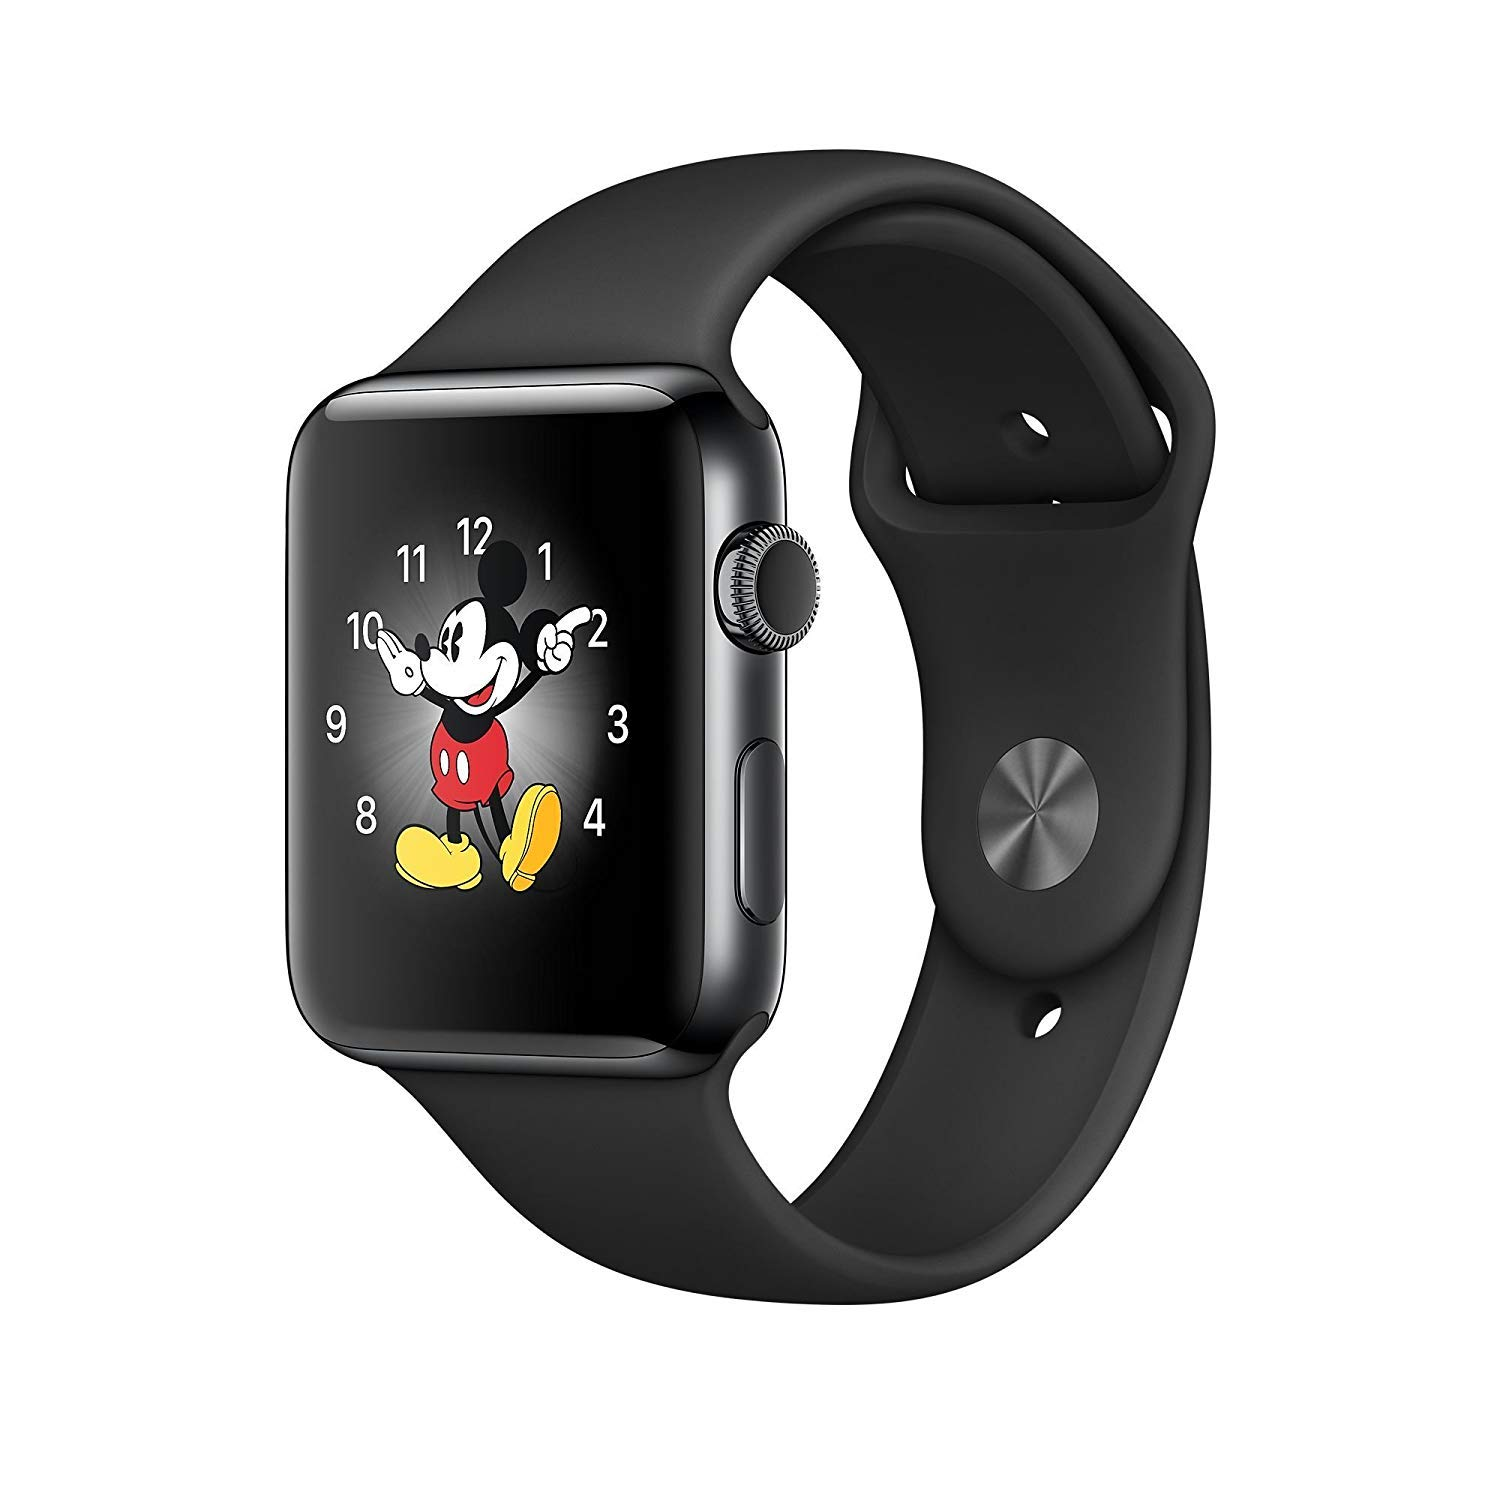 Renewed Apple Watch Series 2, 42mm Space Black Stainless Steel Case with Black Sport Band